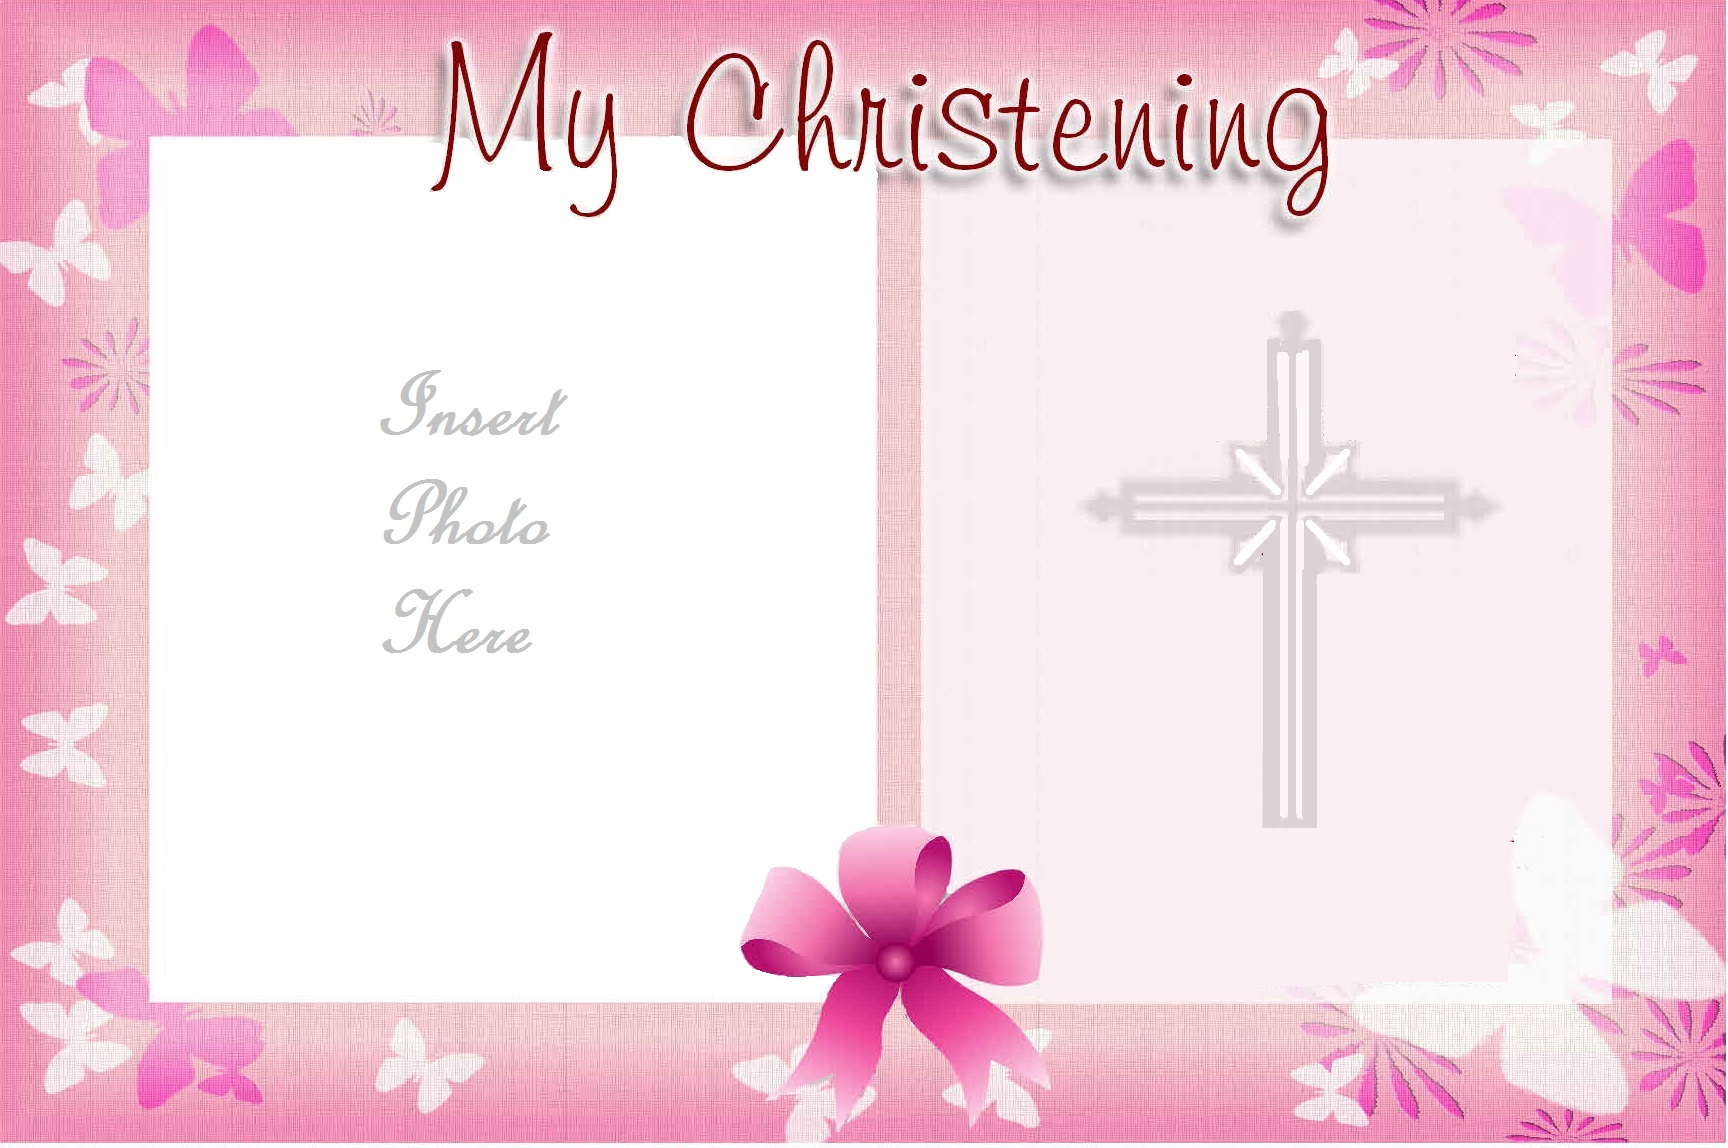 Christening background for baby girl